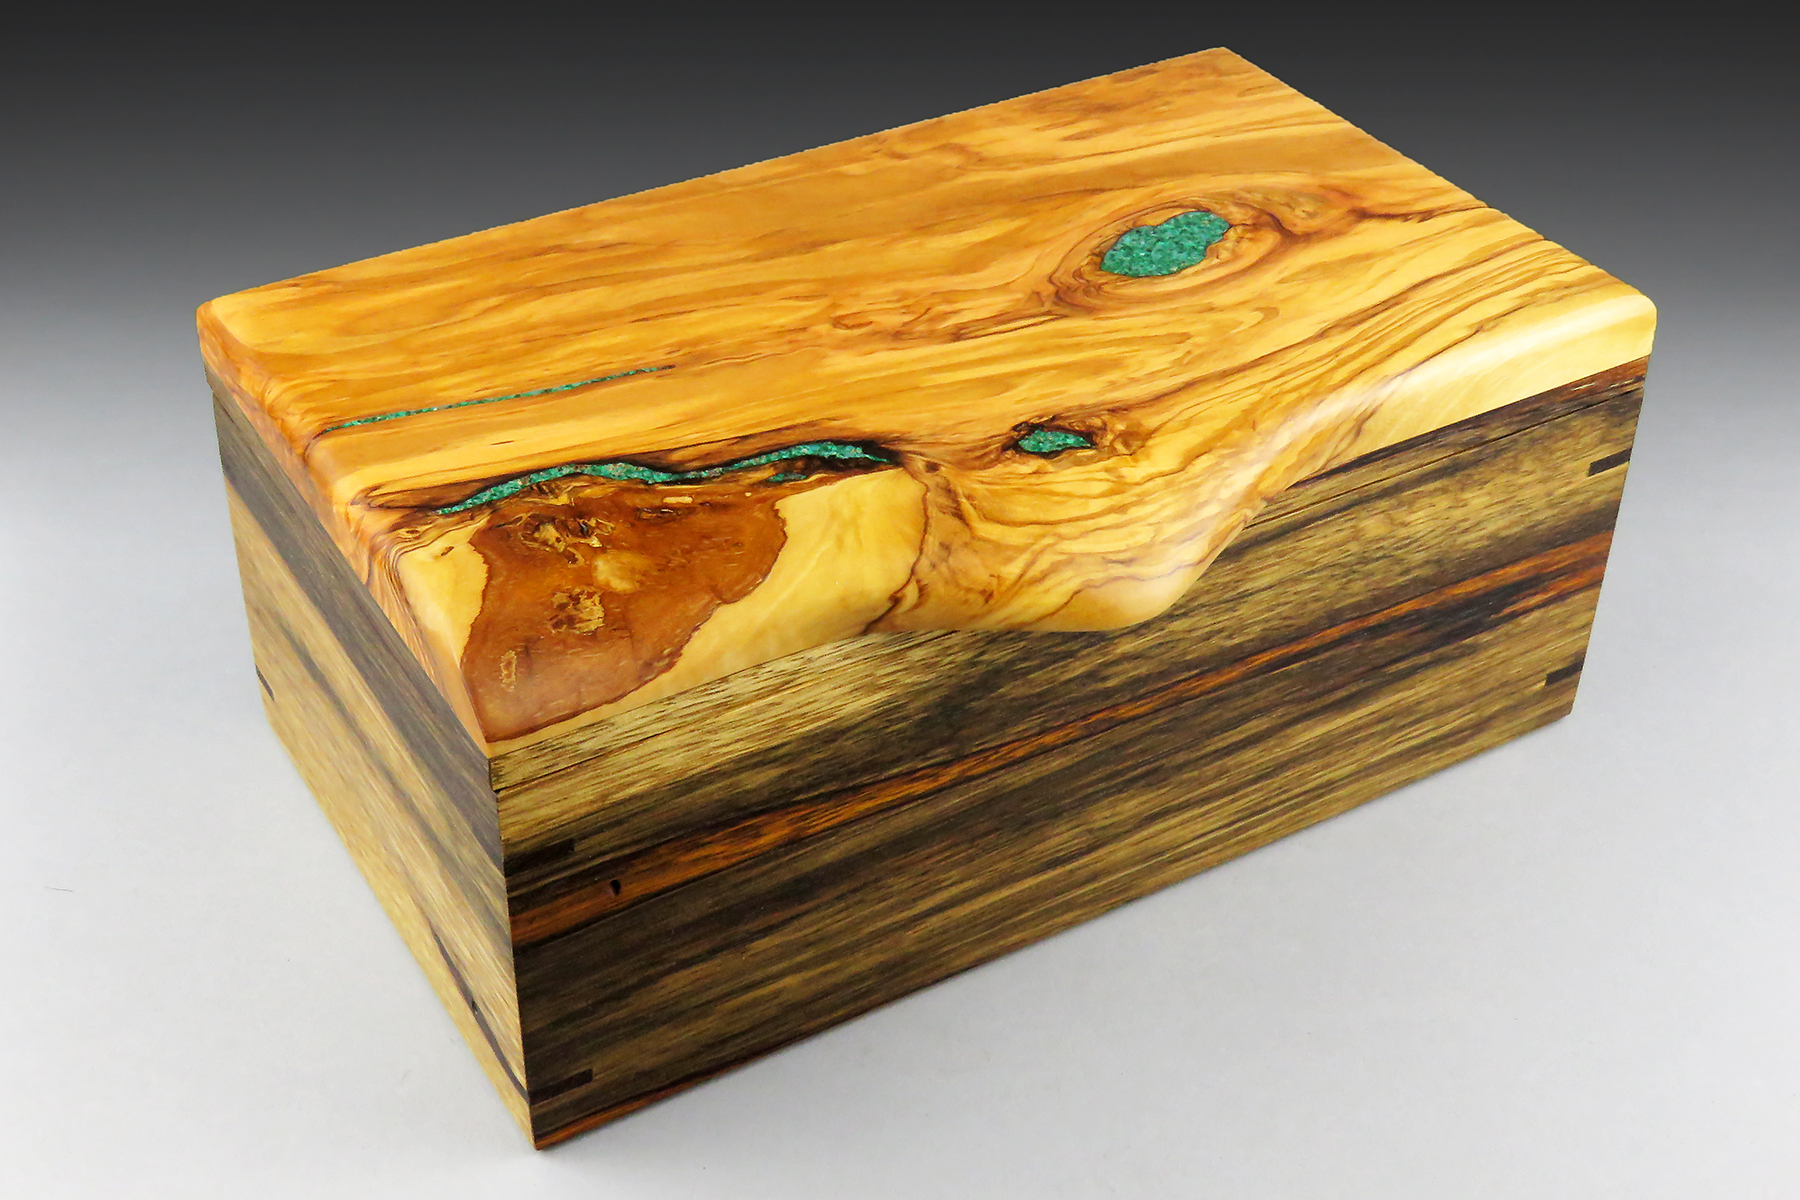 Flowing Olivewood Jewelry Box: $475